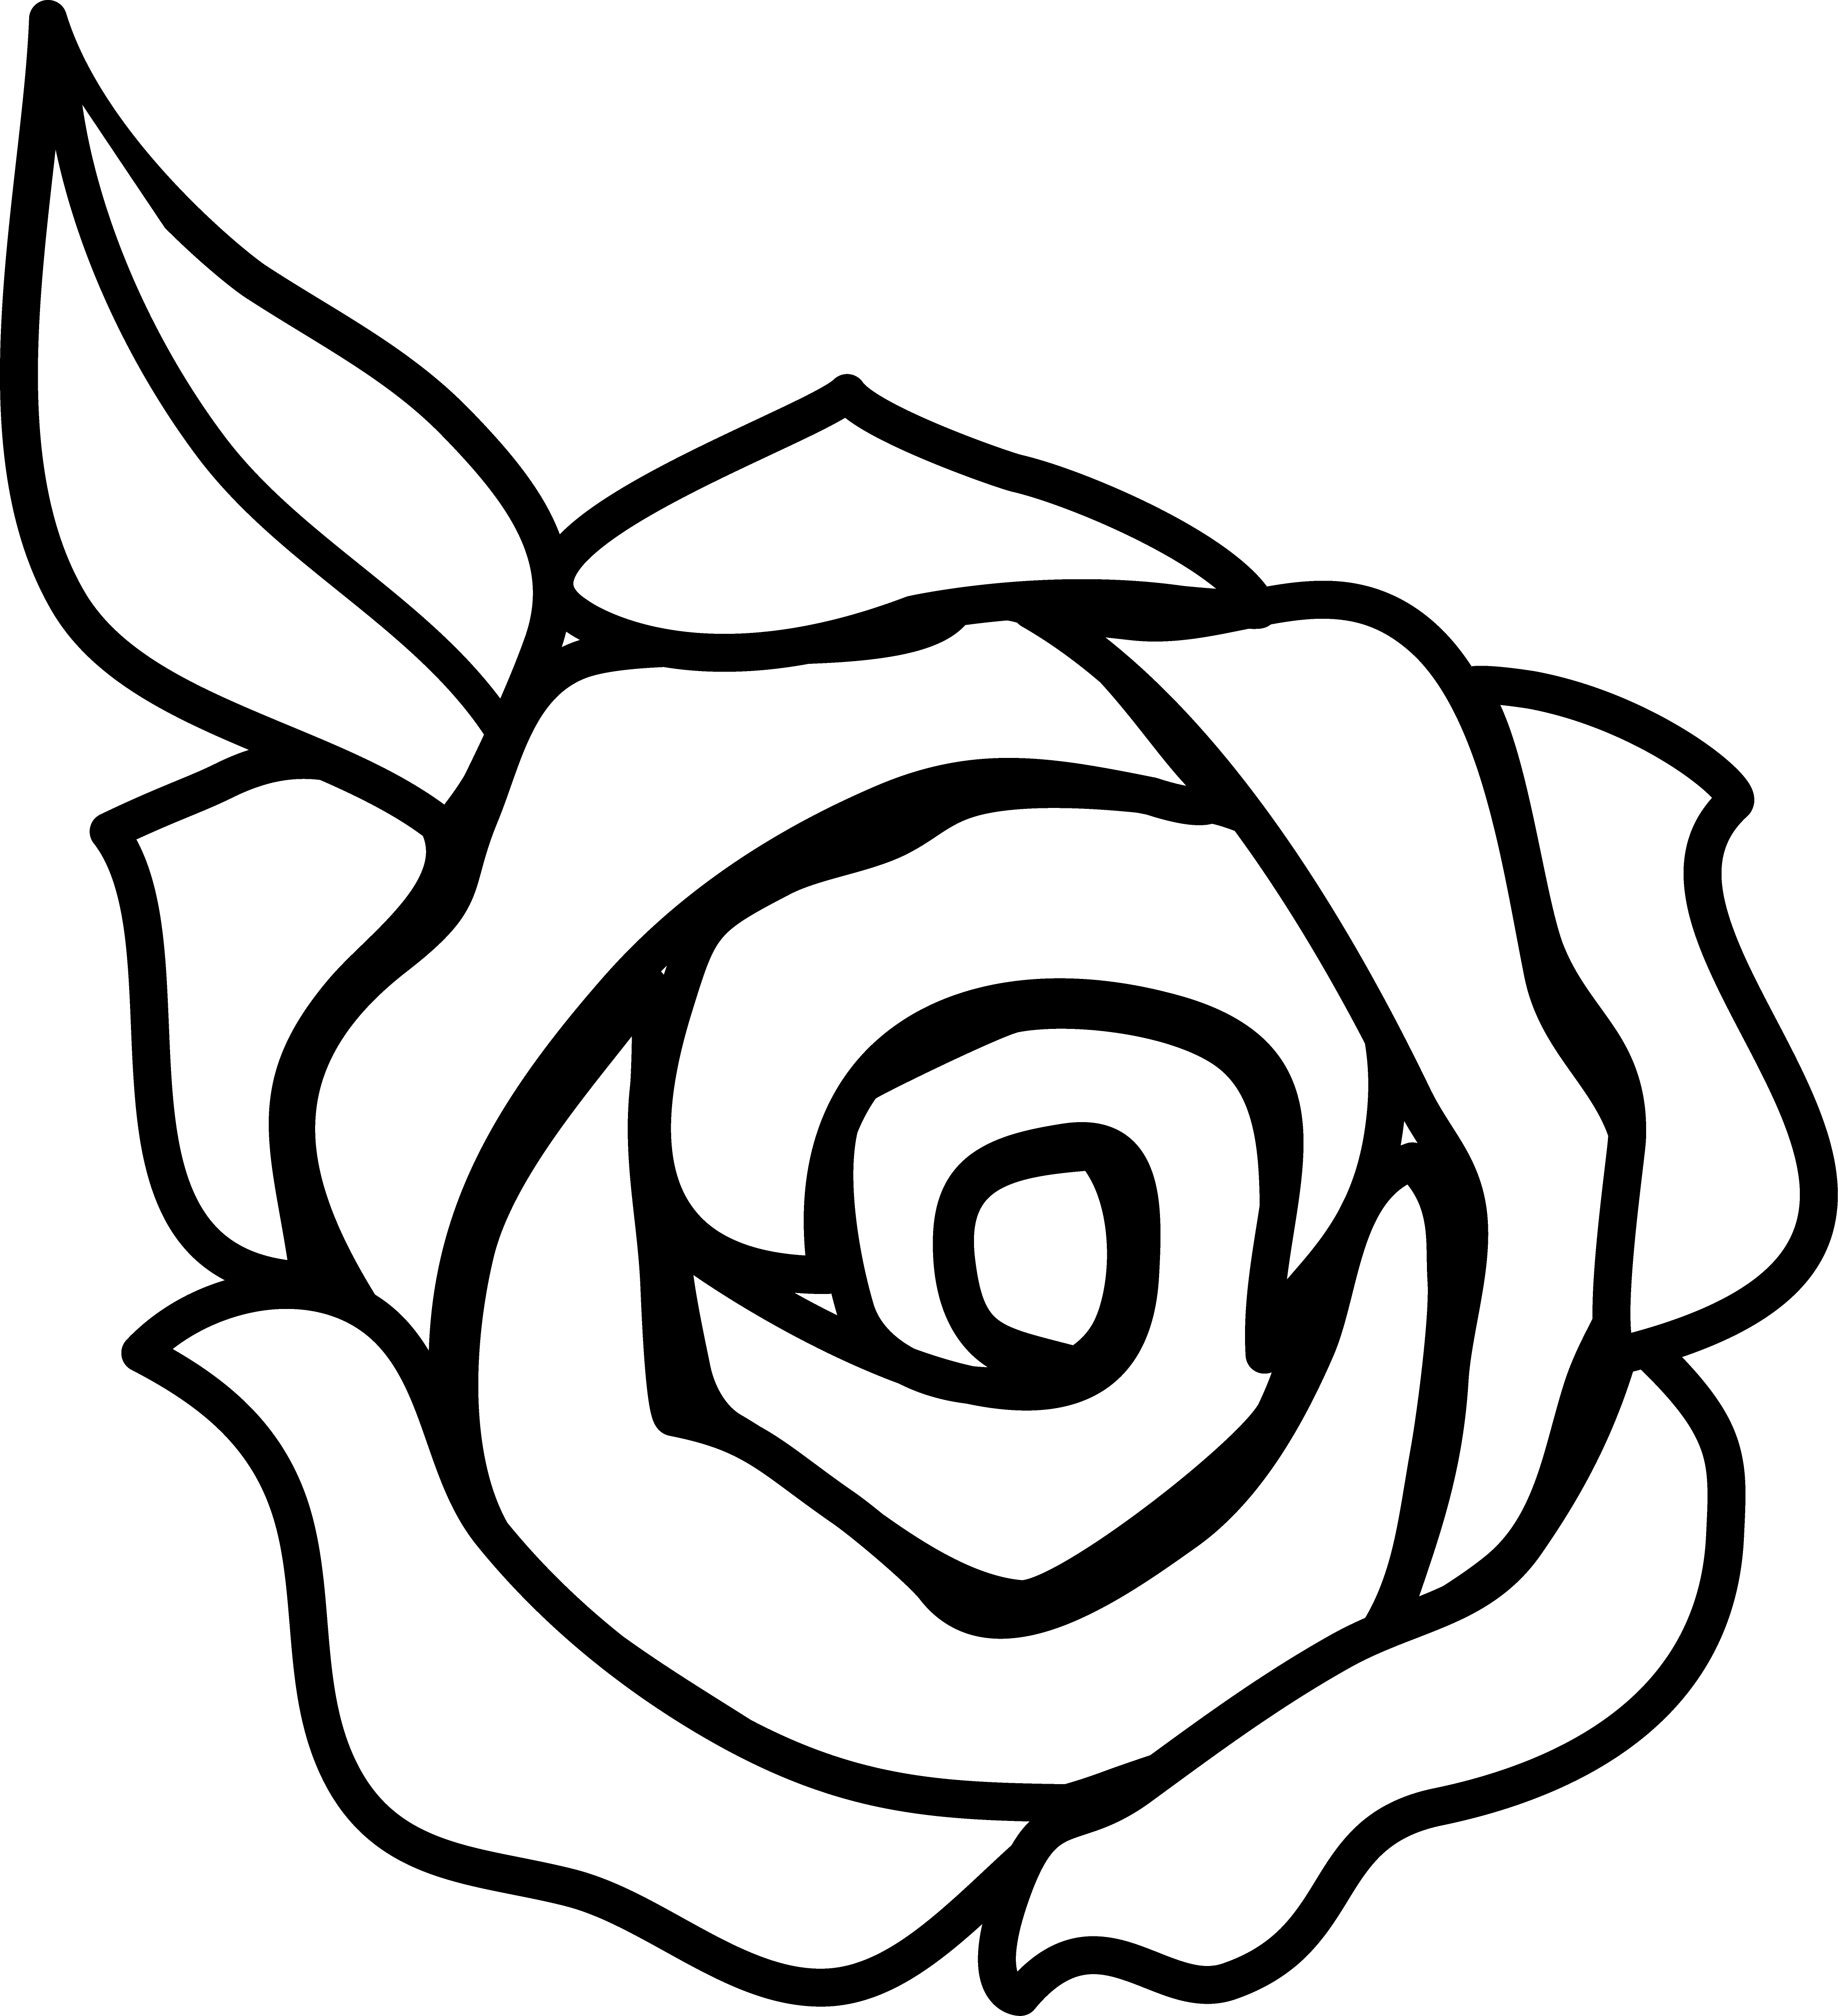 clipart roses black and white - photo #42